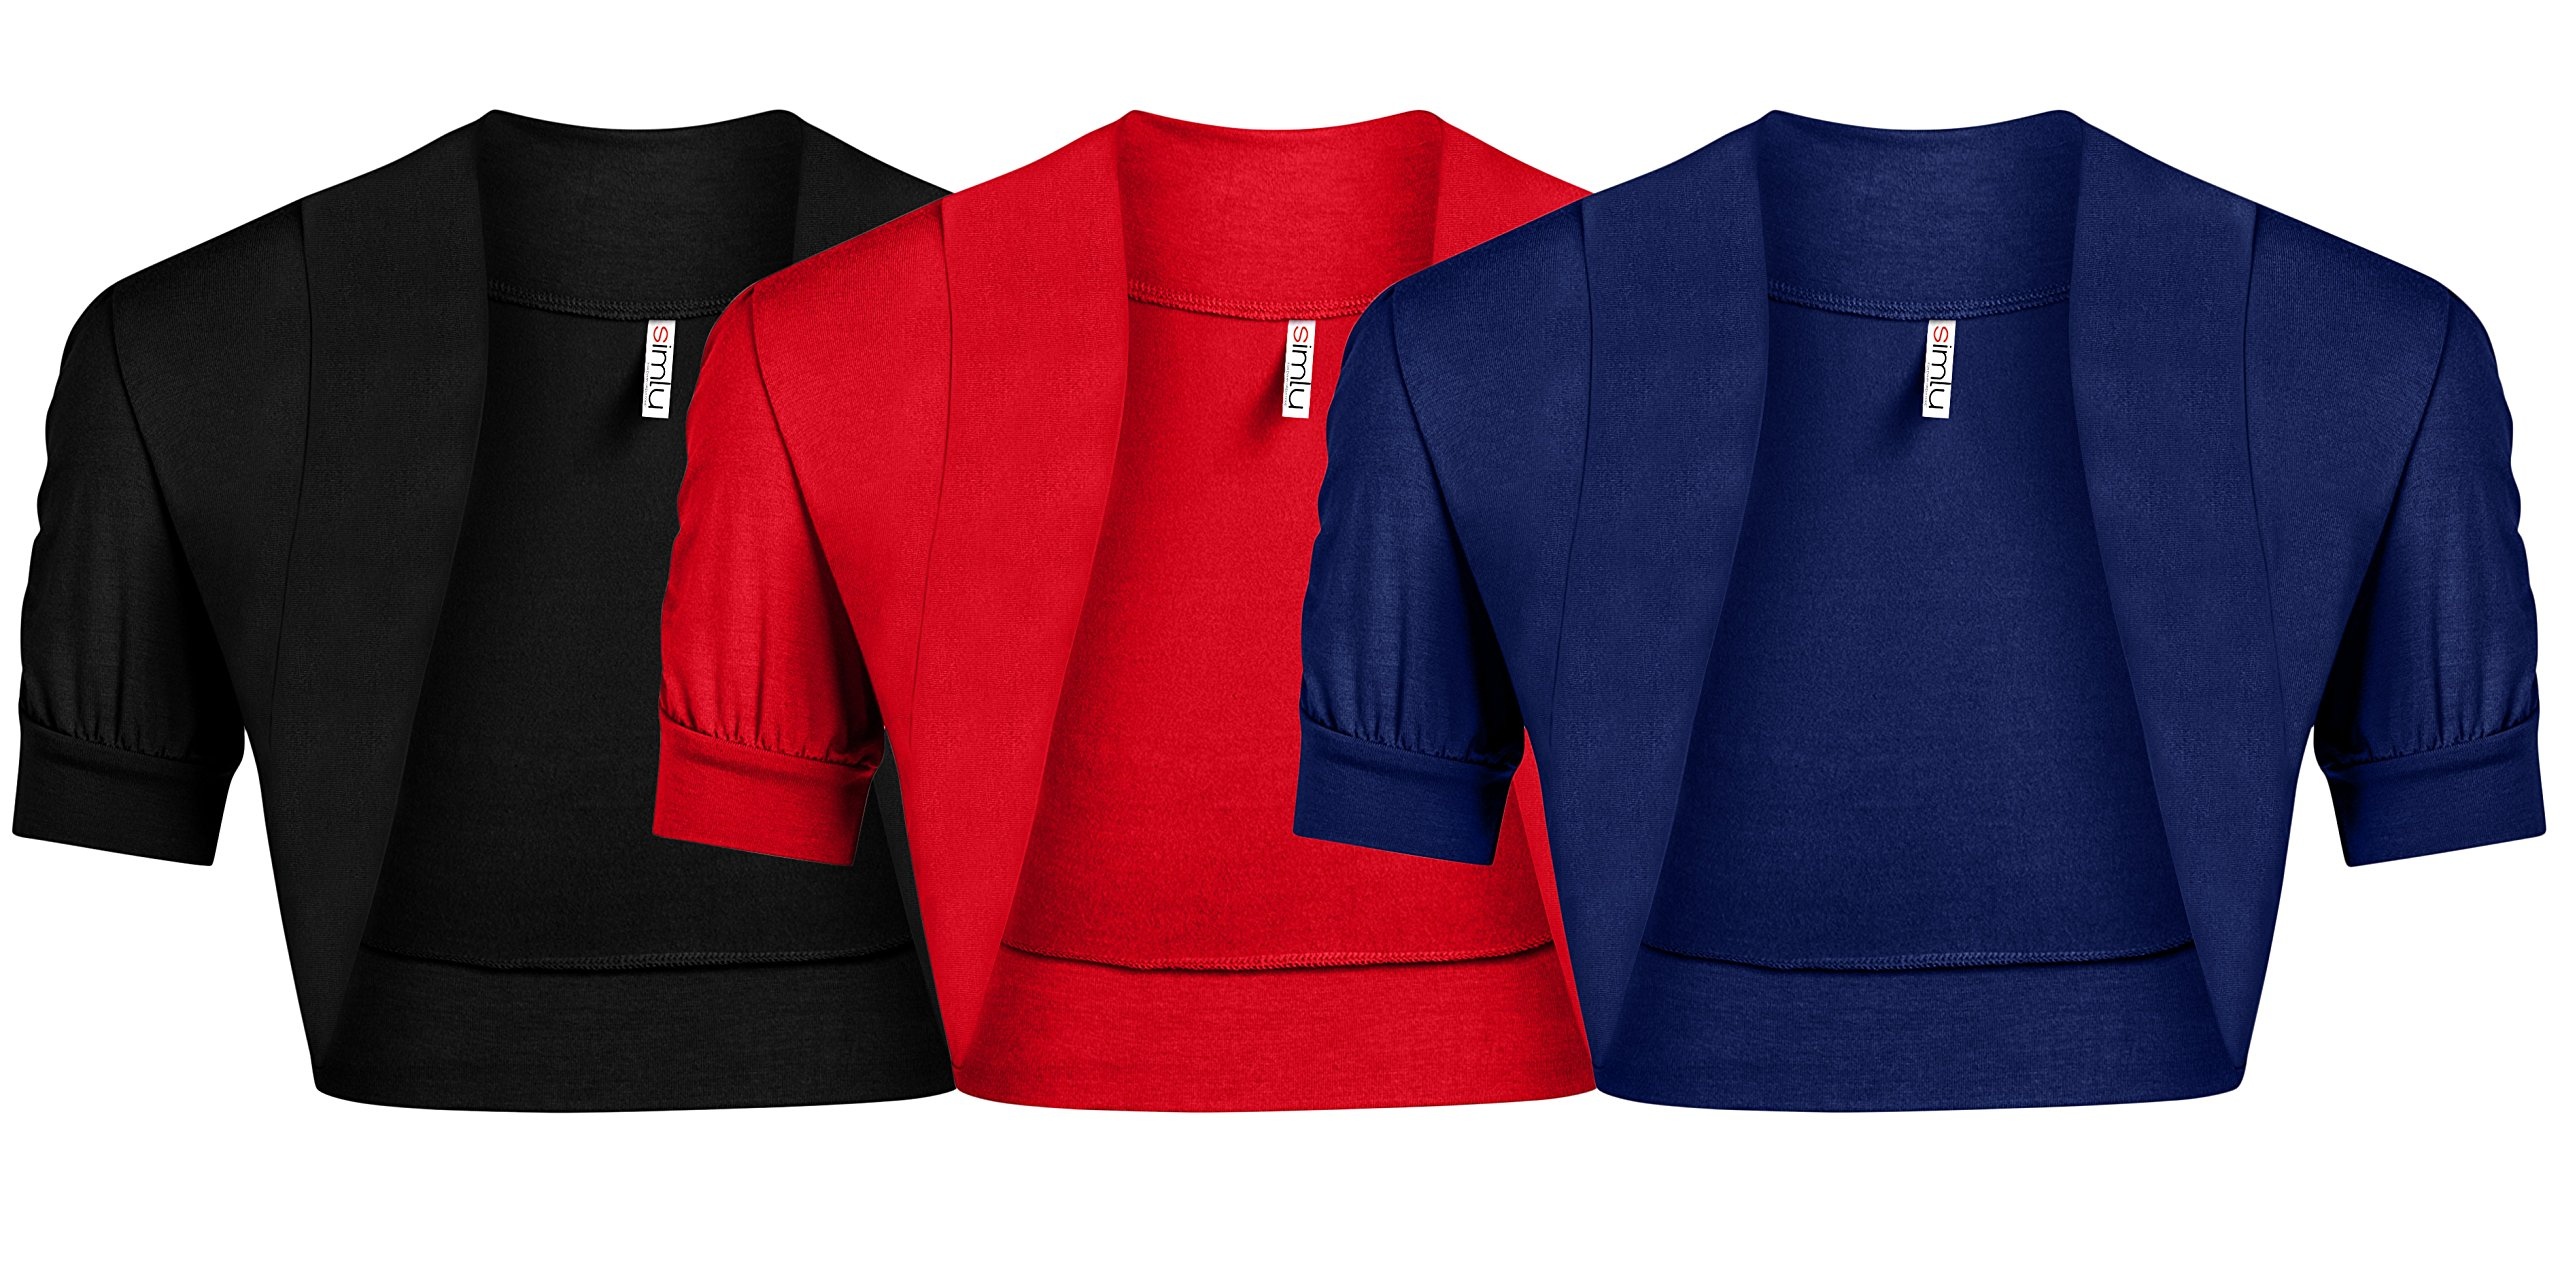 Simlu Womens Shoulder Shrugs Reg and Plus Size Ruched Short Sleeve Boleros for Dresses - Made in USA 3 Pk Black/Red/Royal Small US 2-4